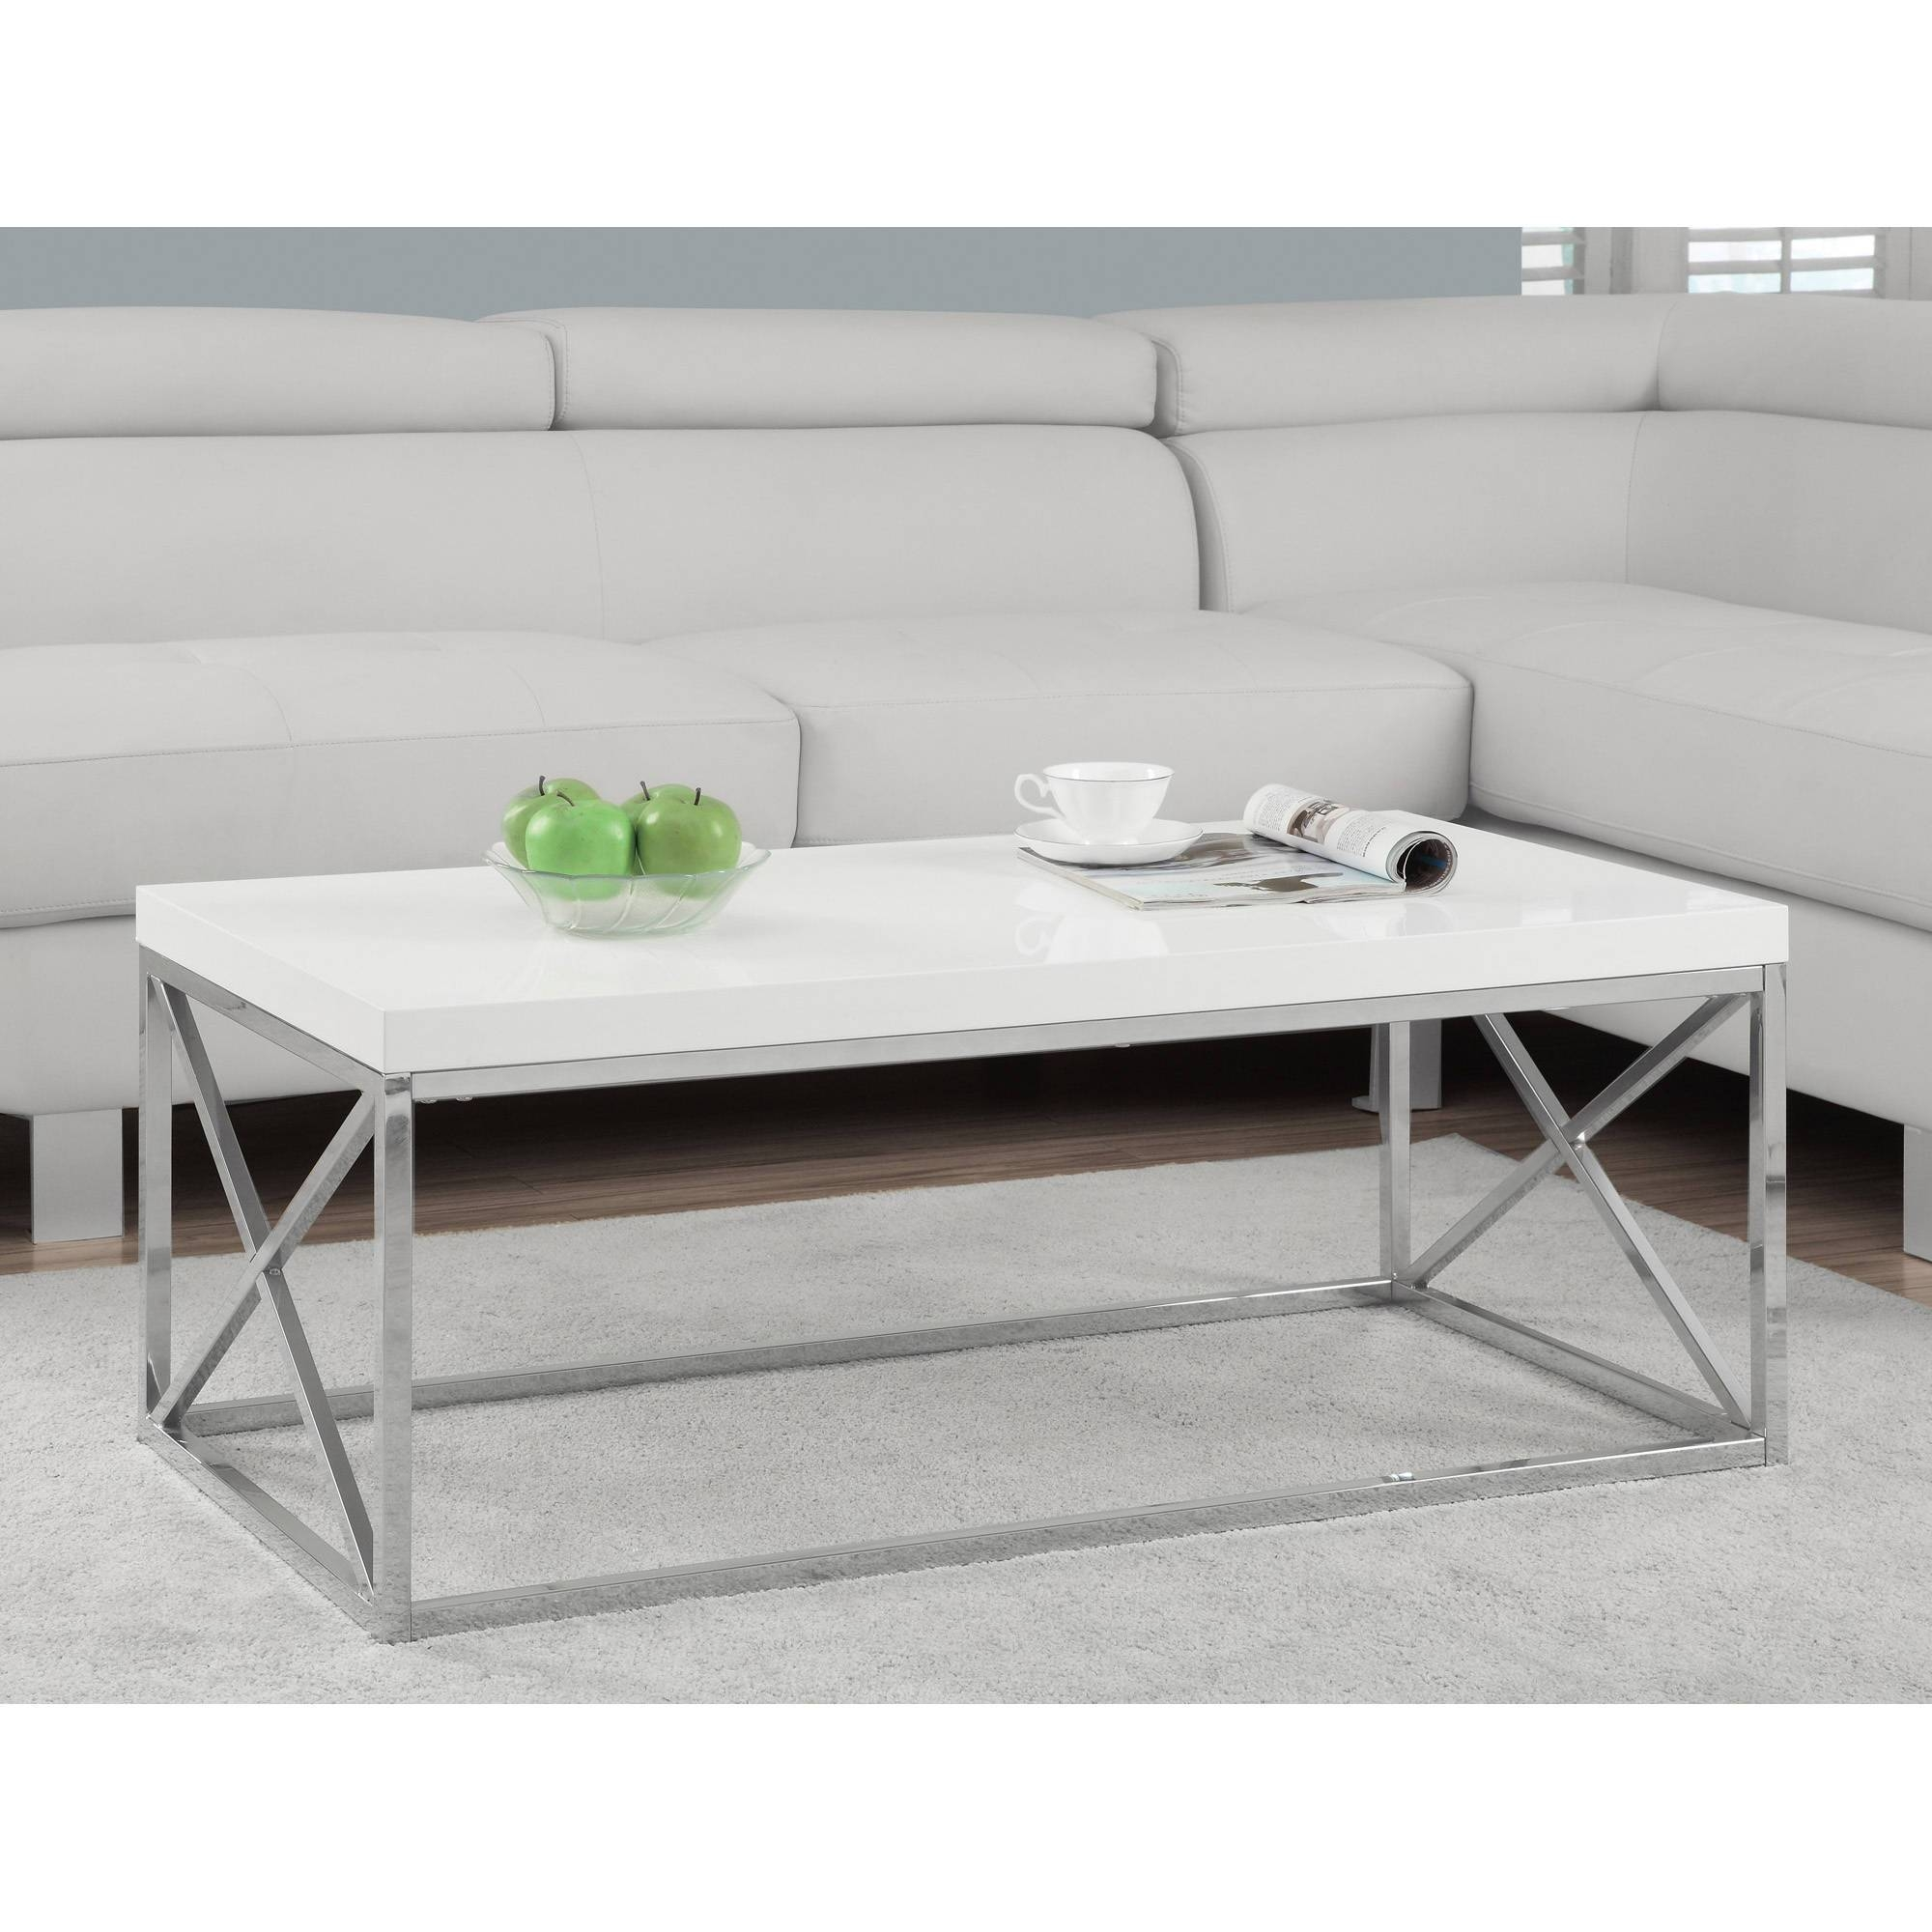 Monarch Coffee Table Glossy White With Chrome Metal - Walmart regarding White and Chrome Coffee Tables (Image 19 of 30)